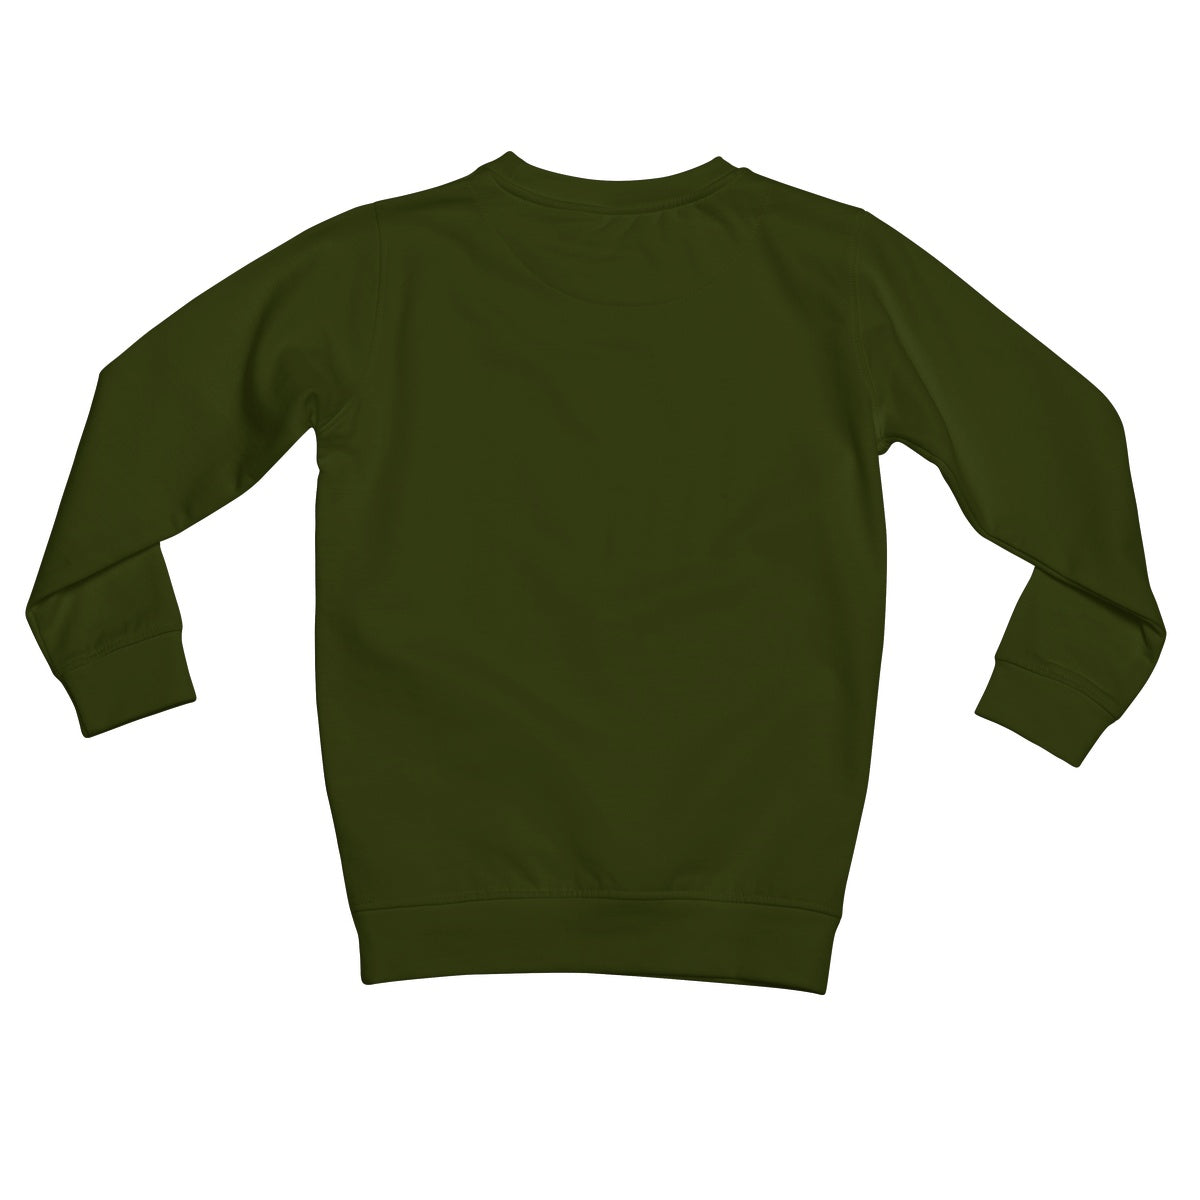 The Farm Kids Retail Sweatshirt